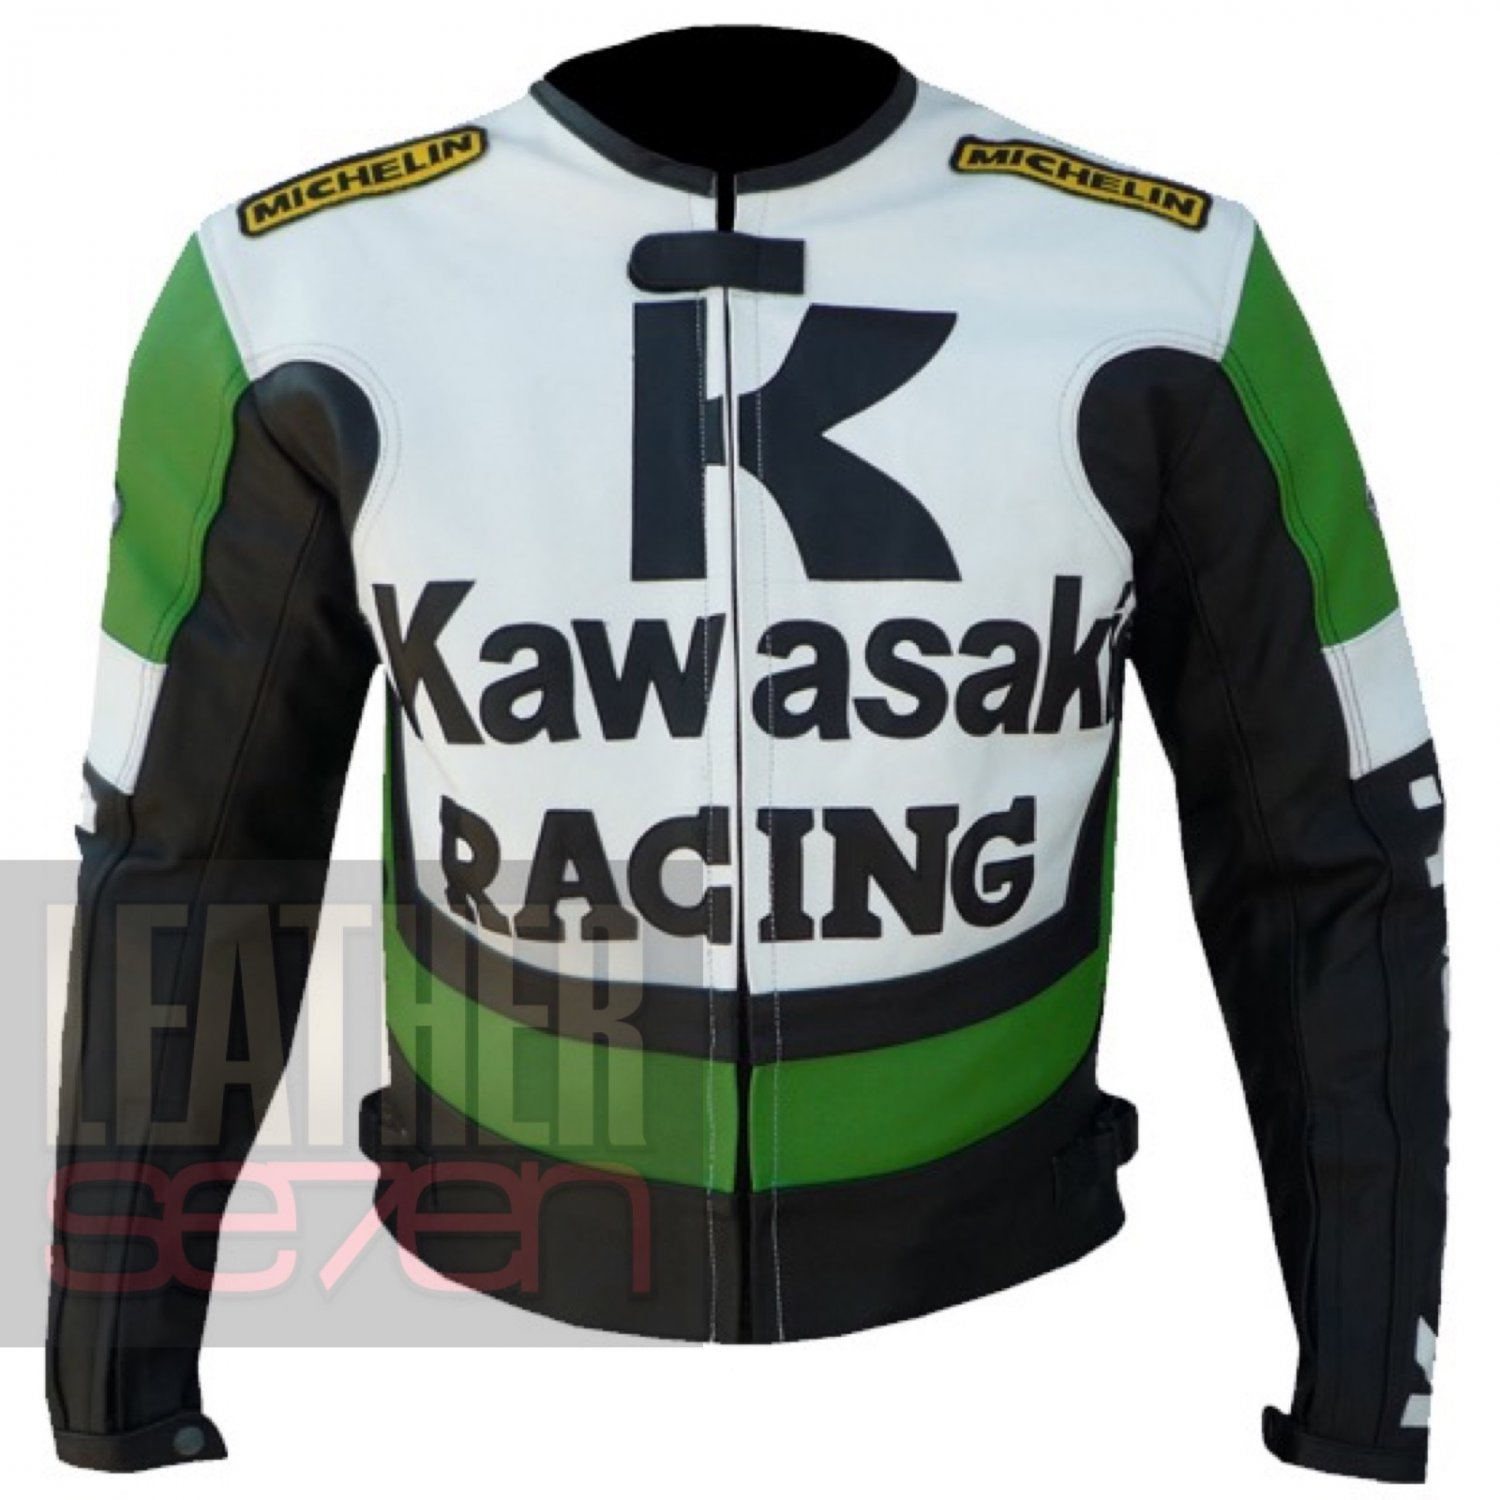 Safety Jackets For Men With Pure Cowhide Leather .. Kawasaki 1 Green Coats